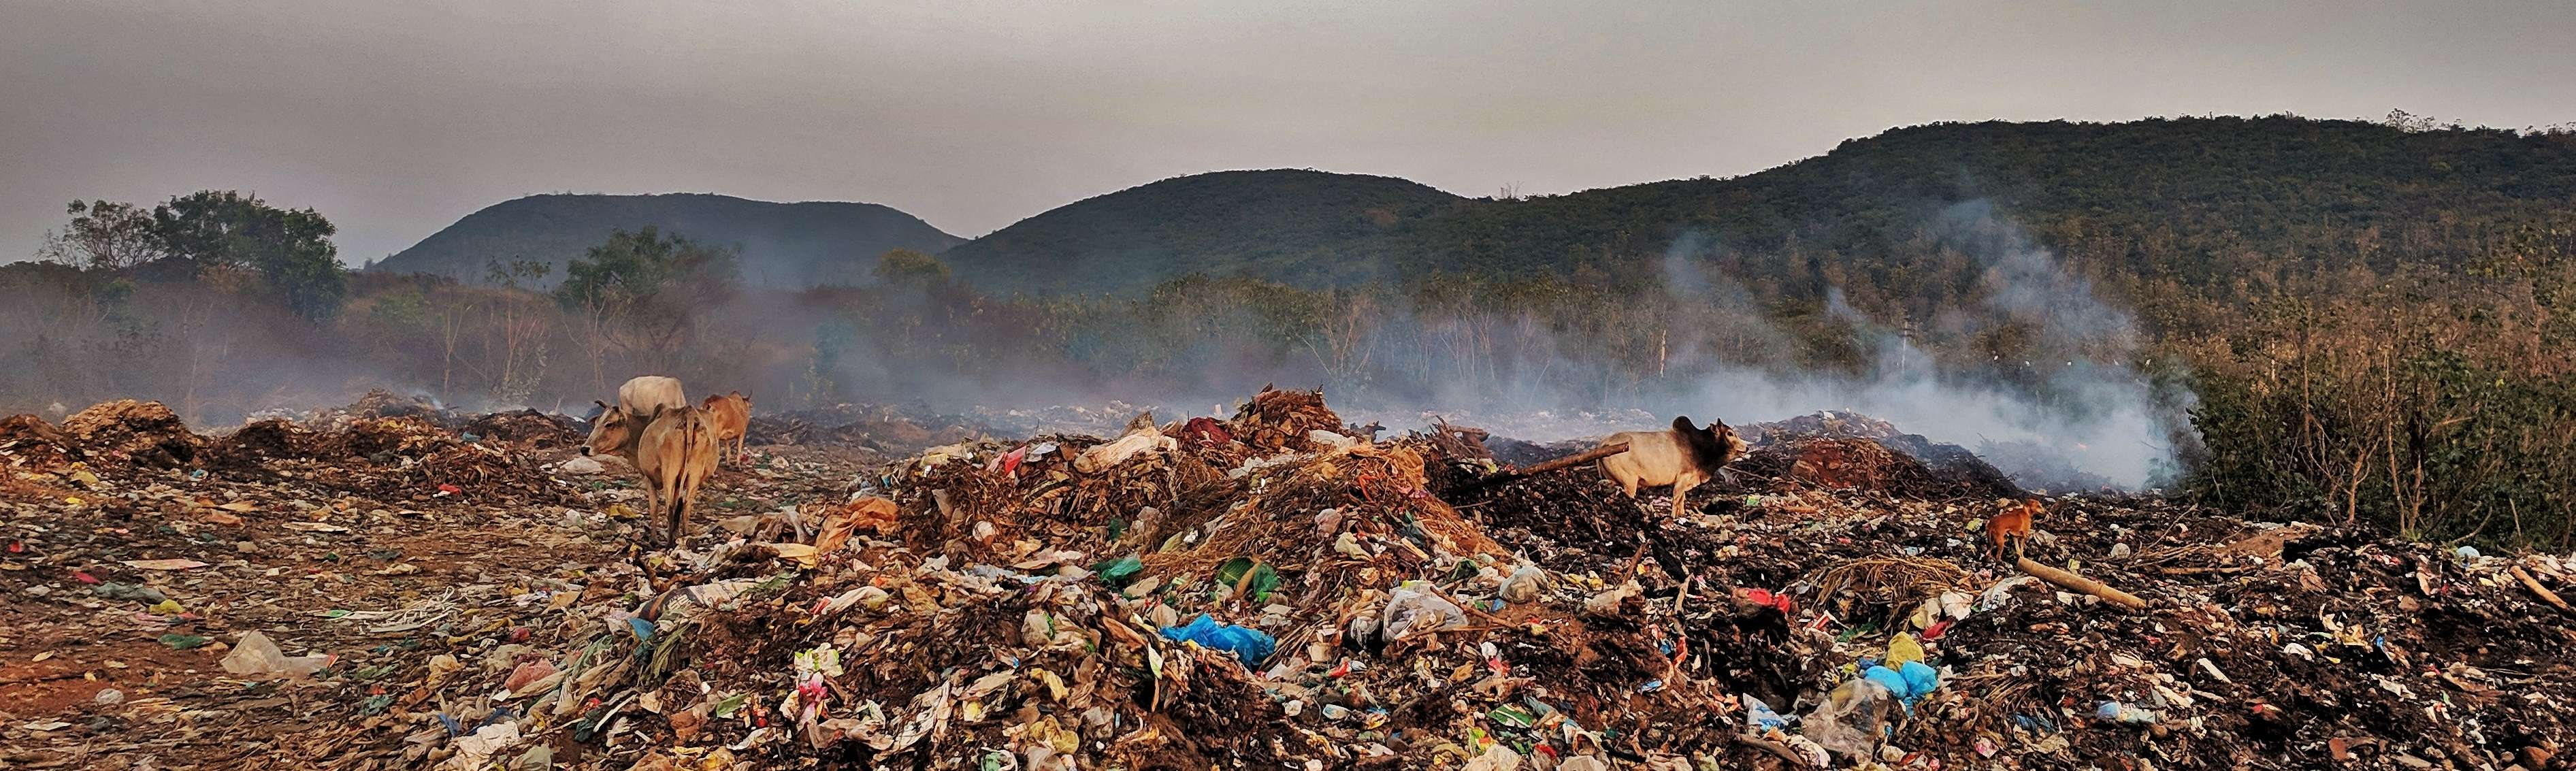 A dumping yard on fire creates air pollution - Copy